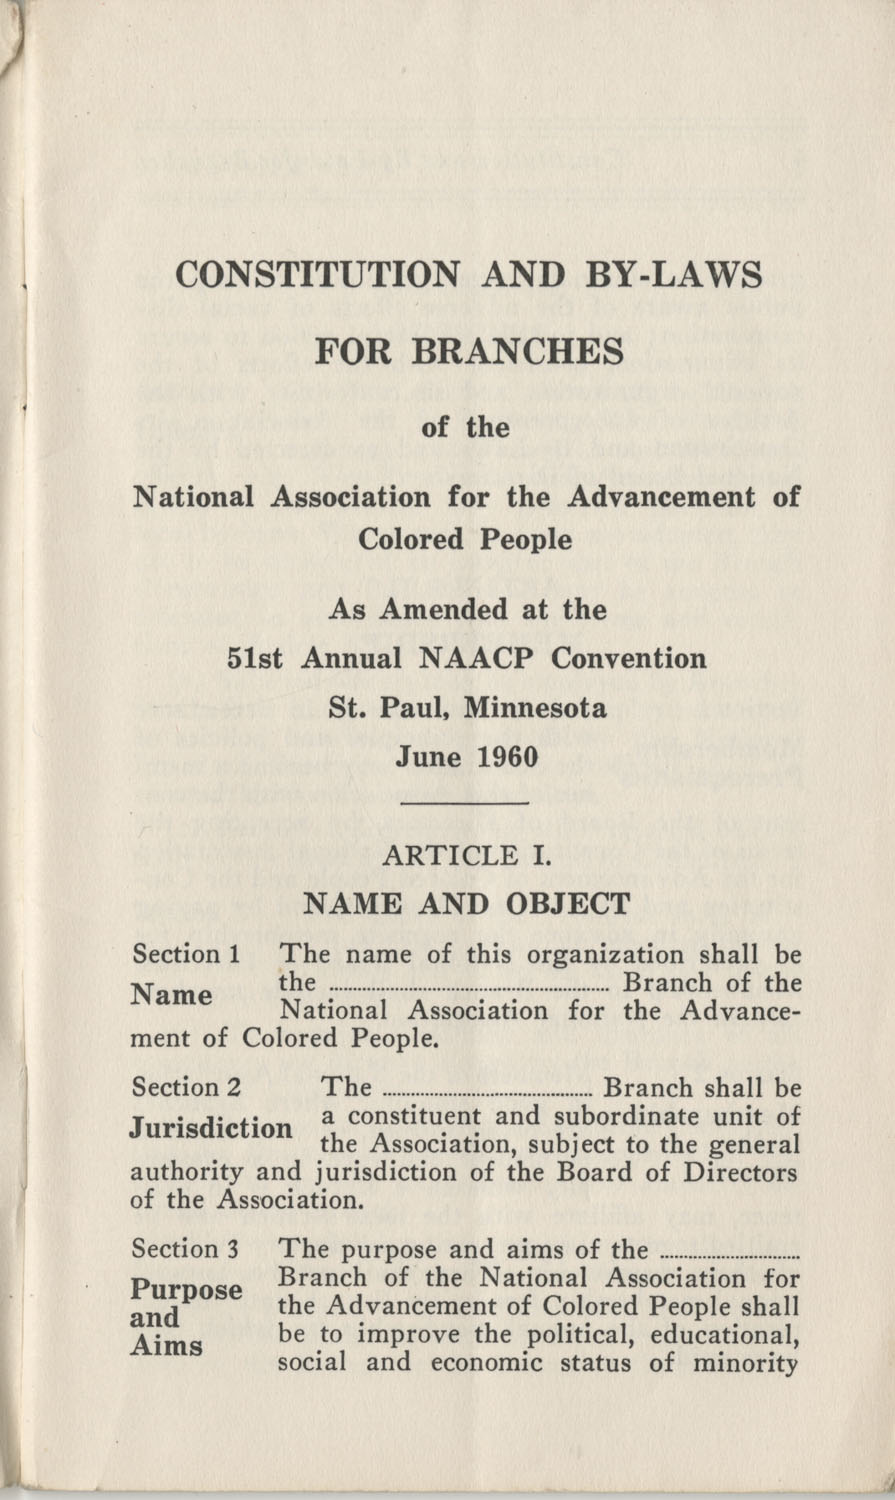 Constitutions and By-Laws, September 1960, Page 3